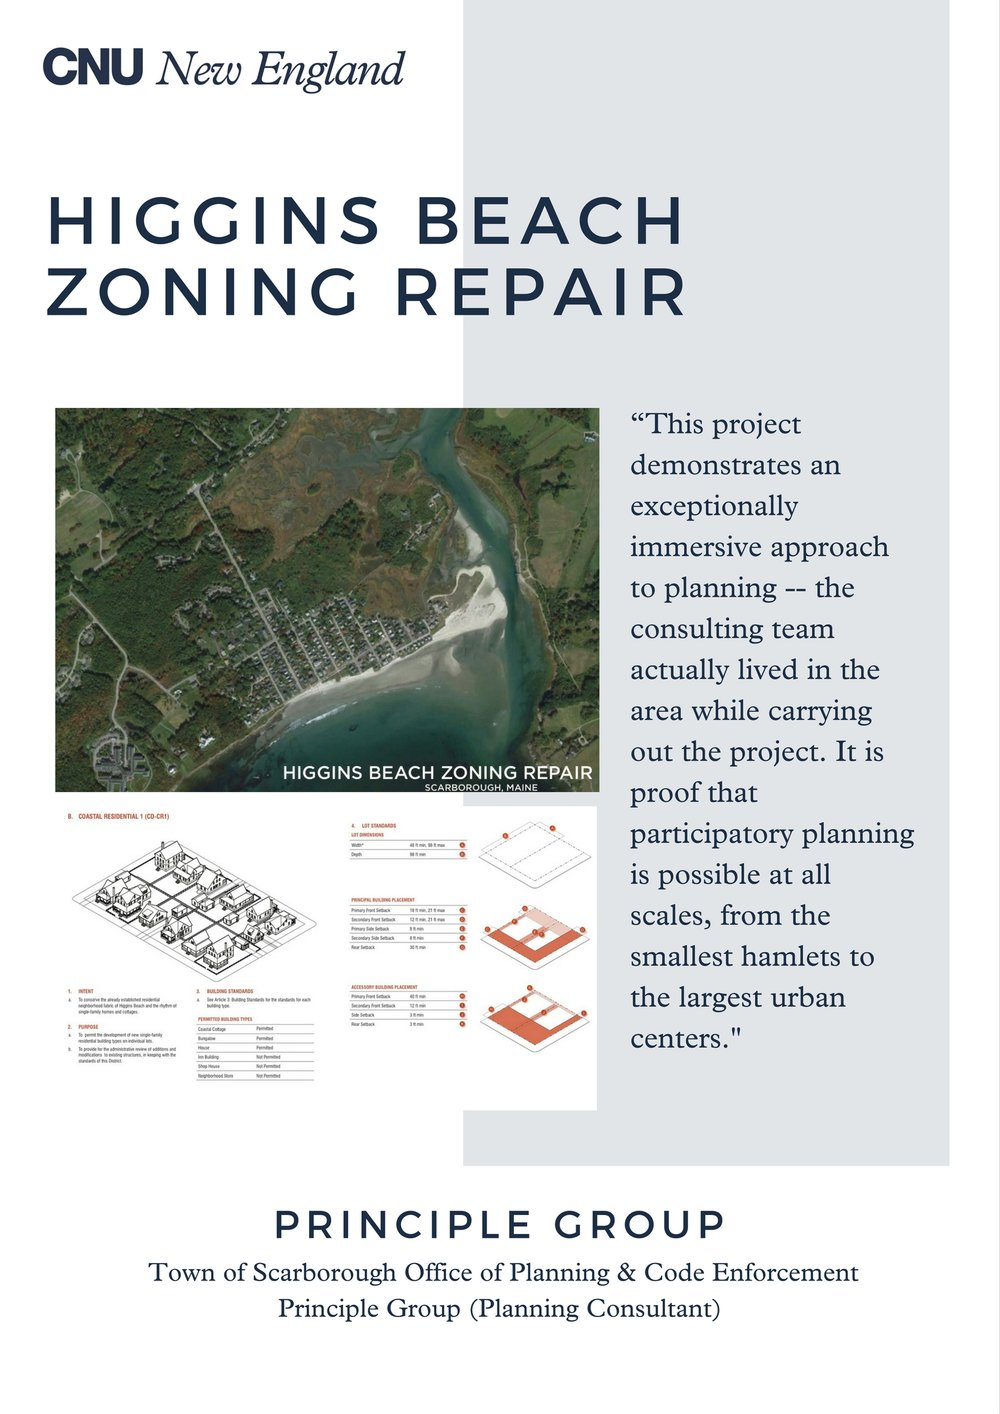 #4 Urbanism Award - Higgins Beach Zoning Repair.jpg